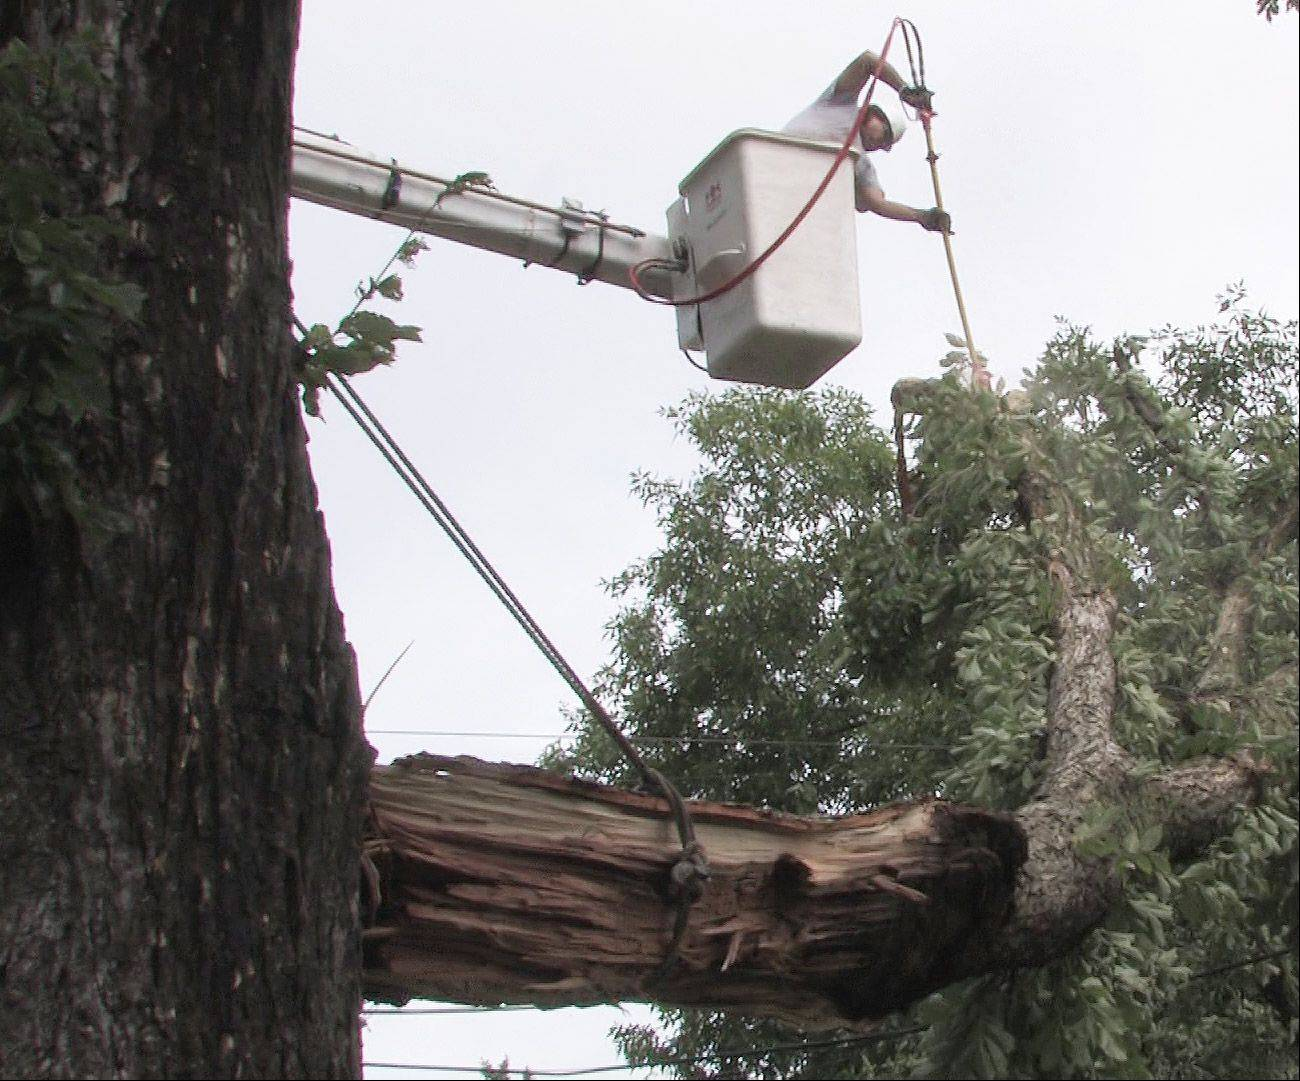 A contractor hired by Mount Prospect cuts branches from a damaged tree along Council Trail after a storm in August 2007. Village officials say the cost of such work could increase under a stricter application of the state's prevailing wage law.